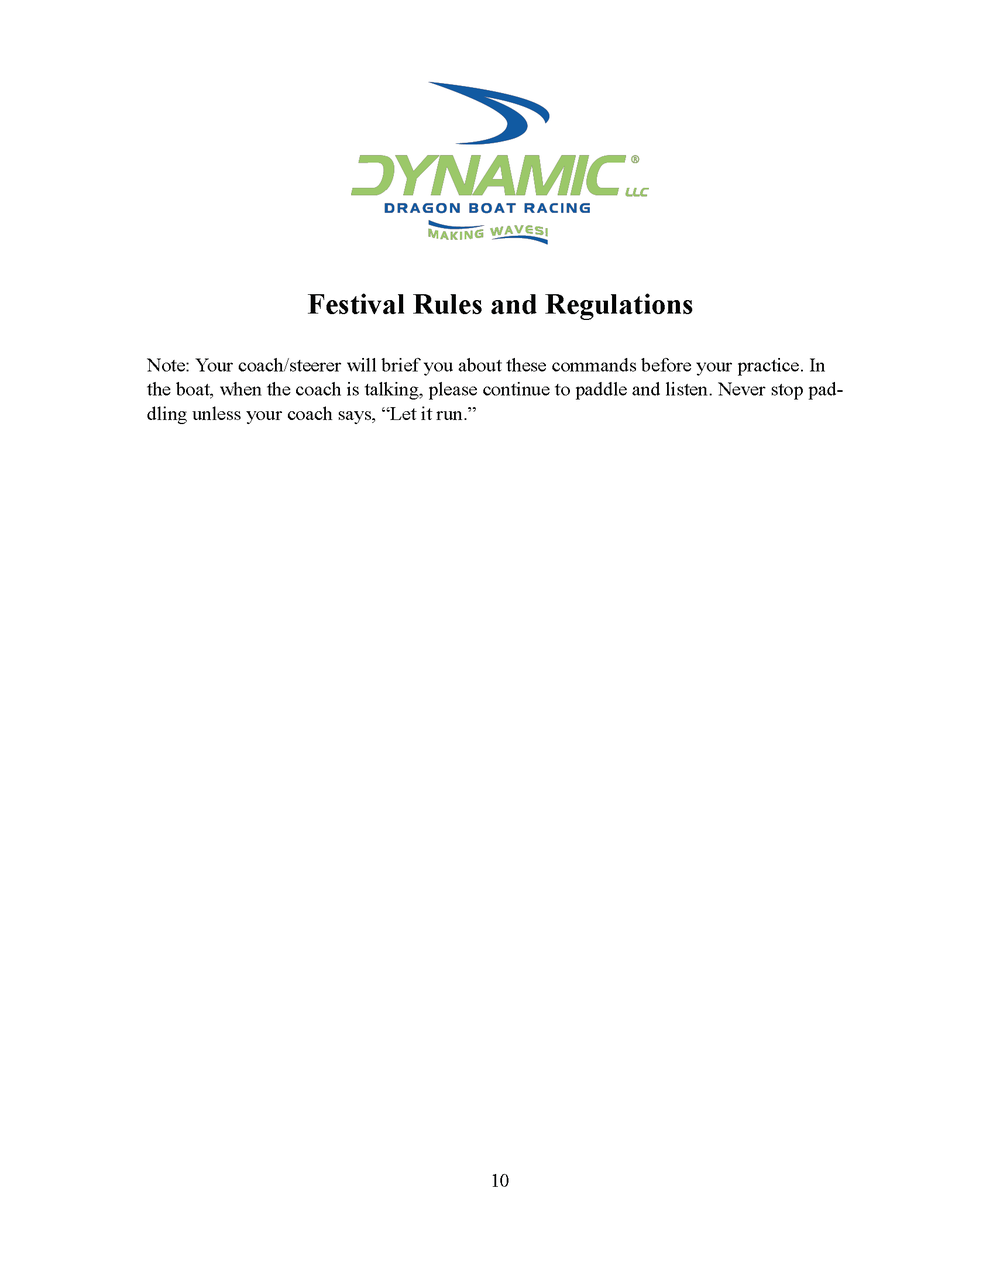 Dynamic_Festival_RulesRegulations_2019_Page_10.png